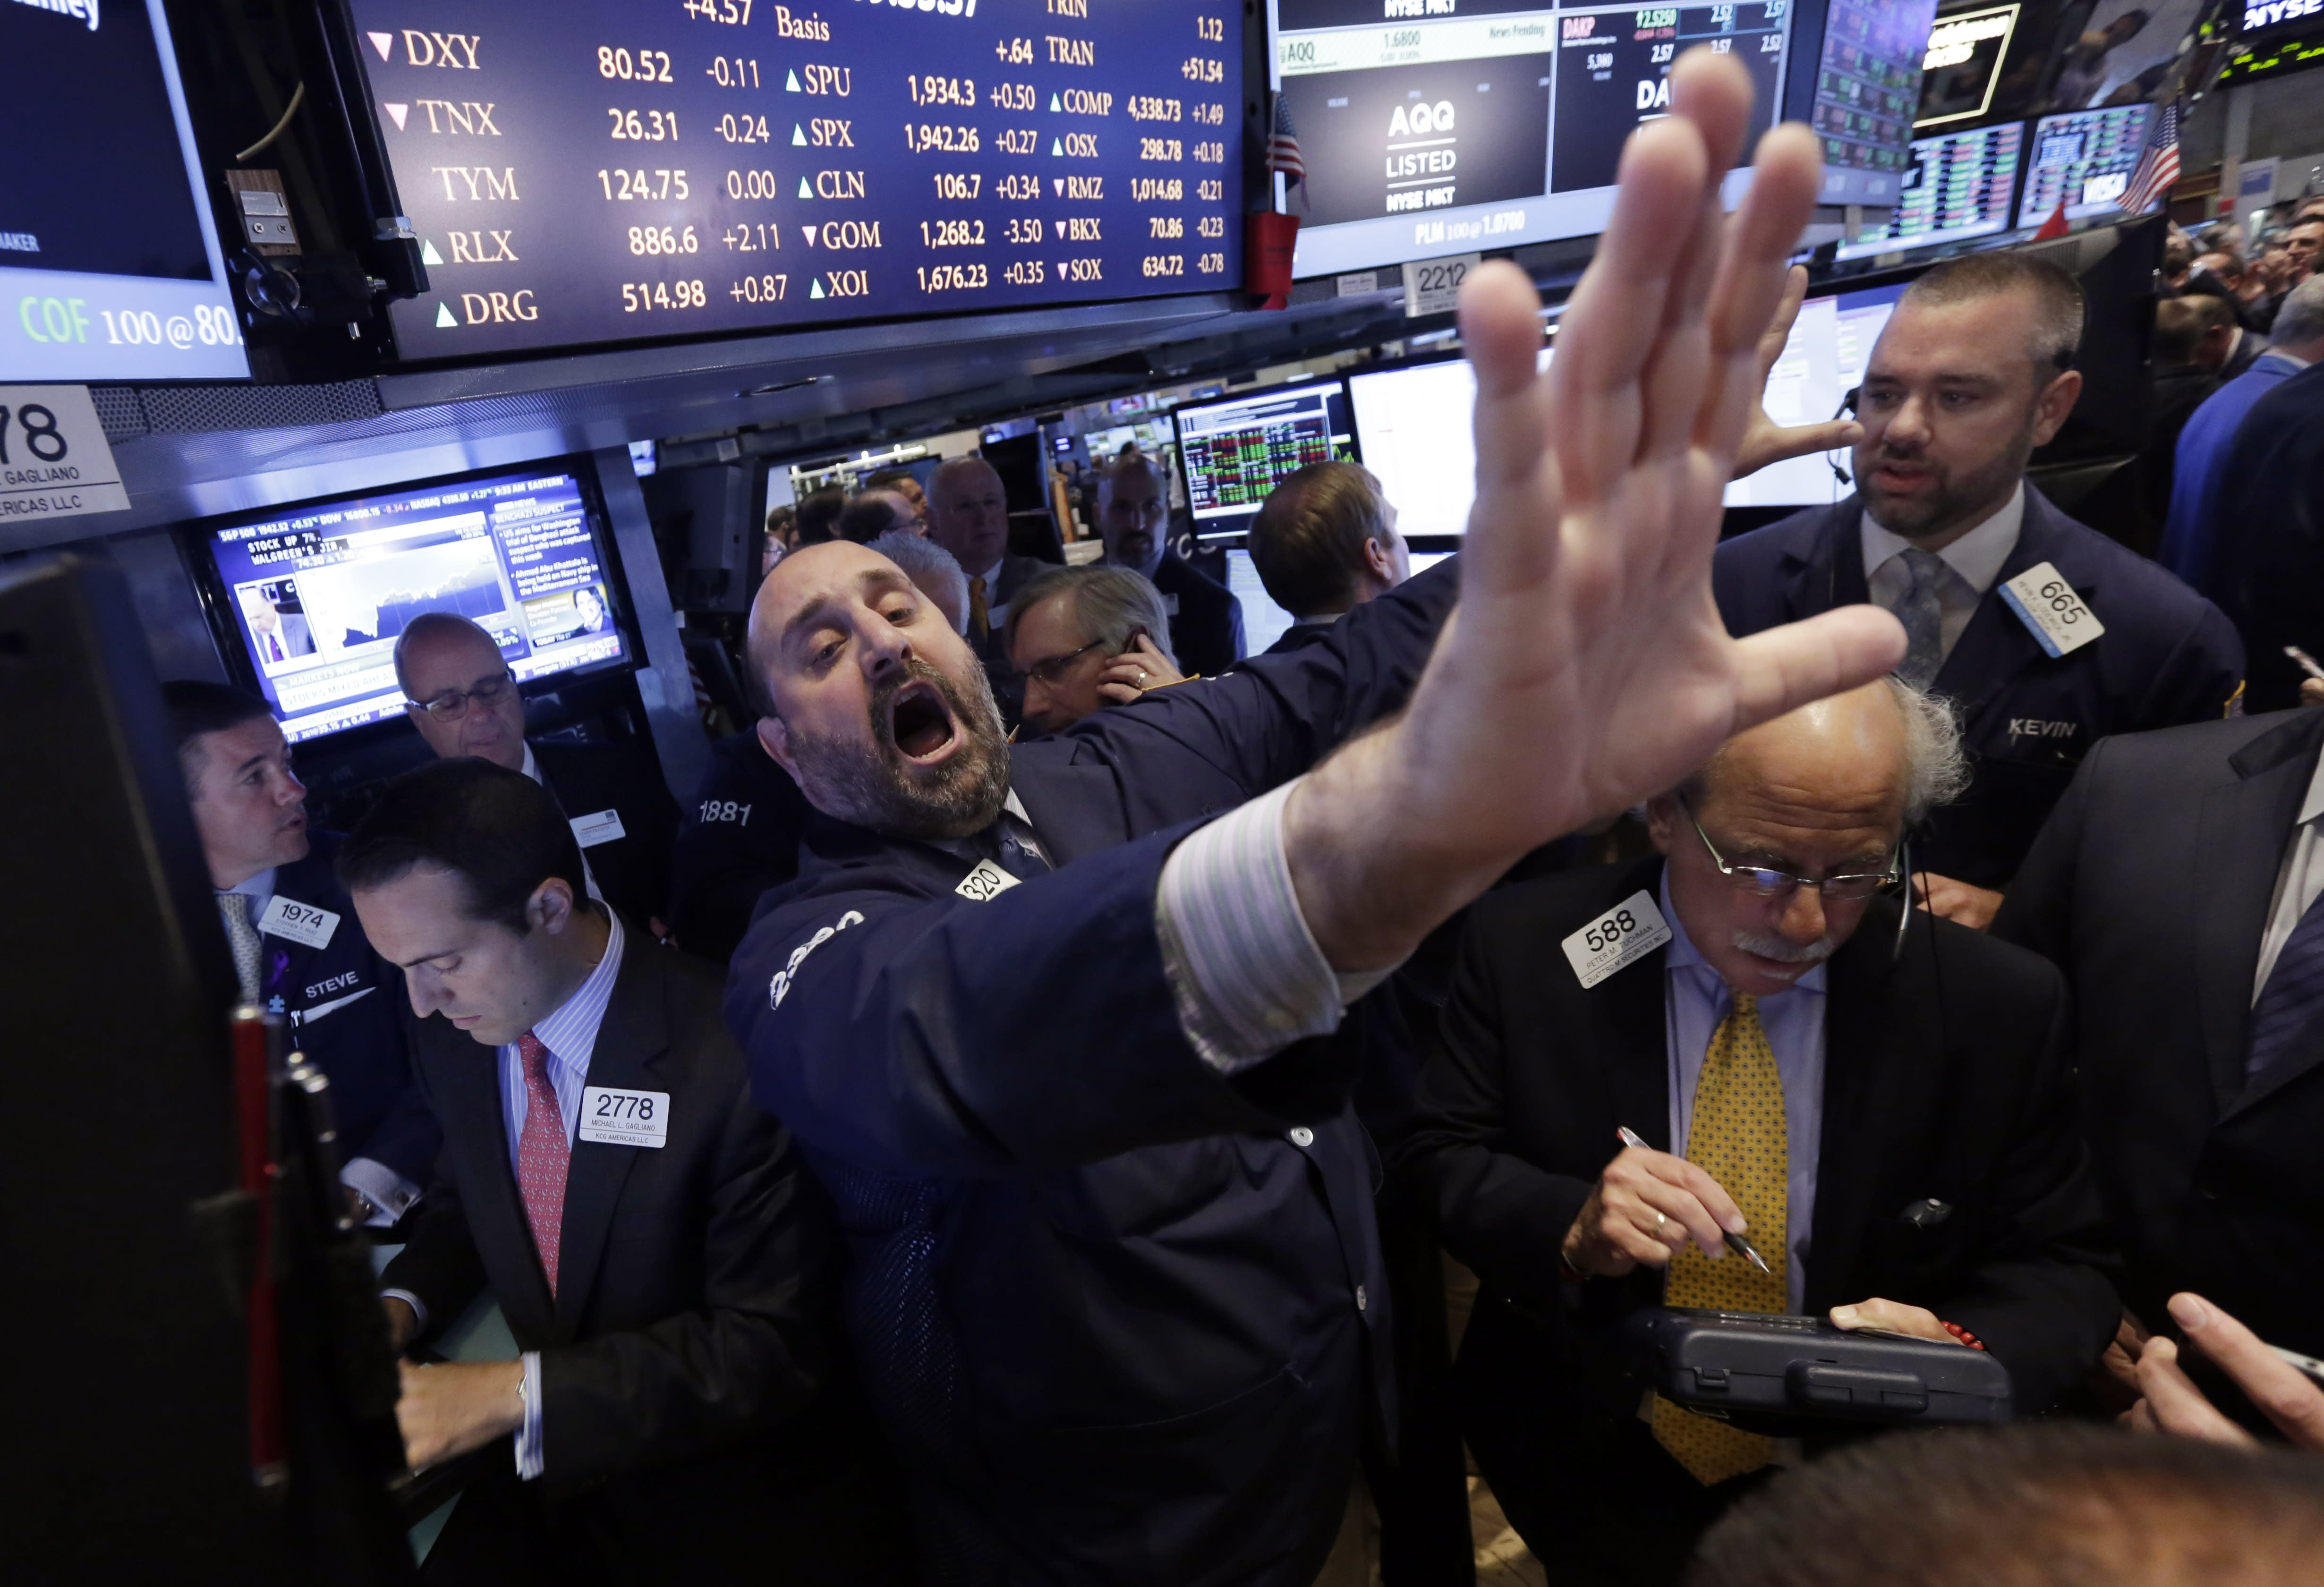 Investors expect higher stocks in 2015, but also turbulence